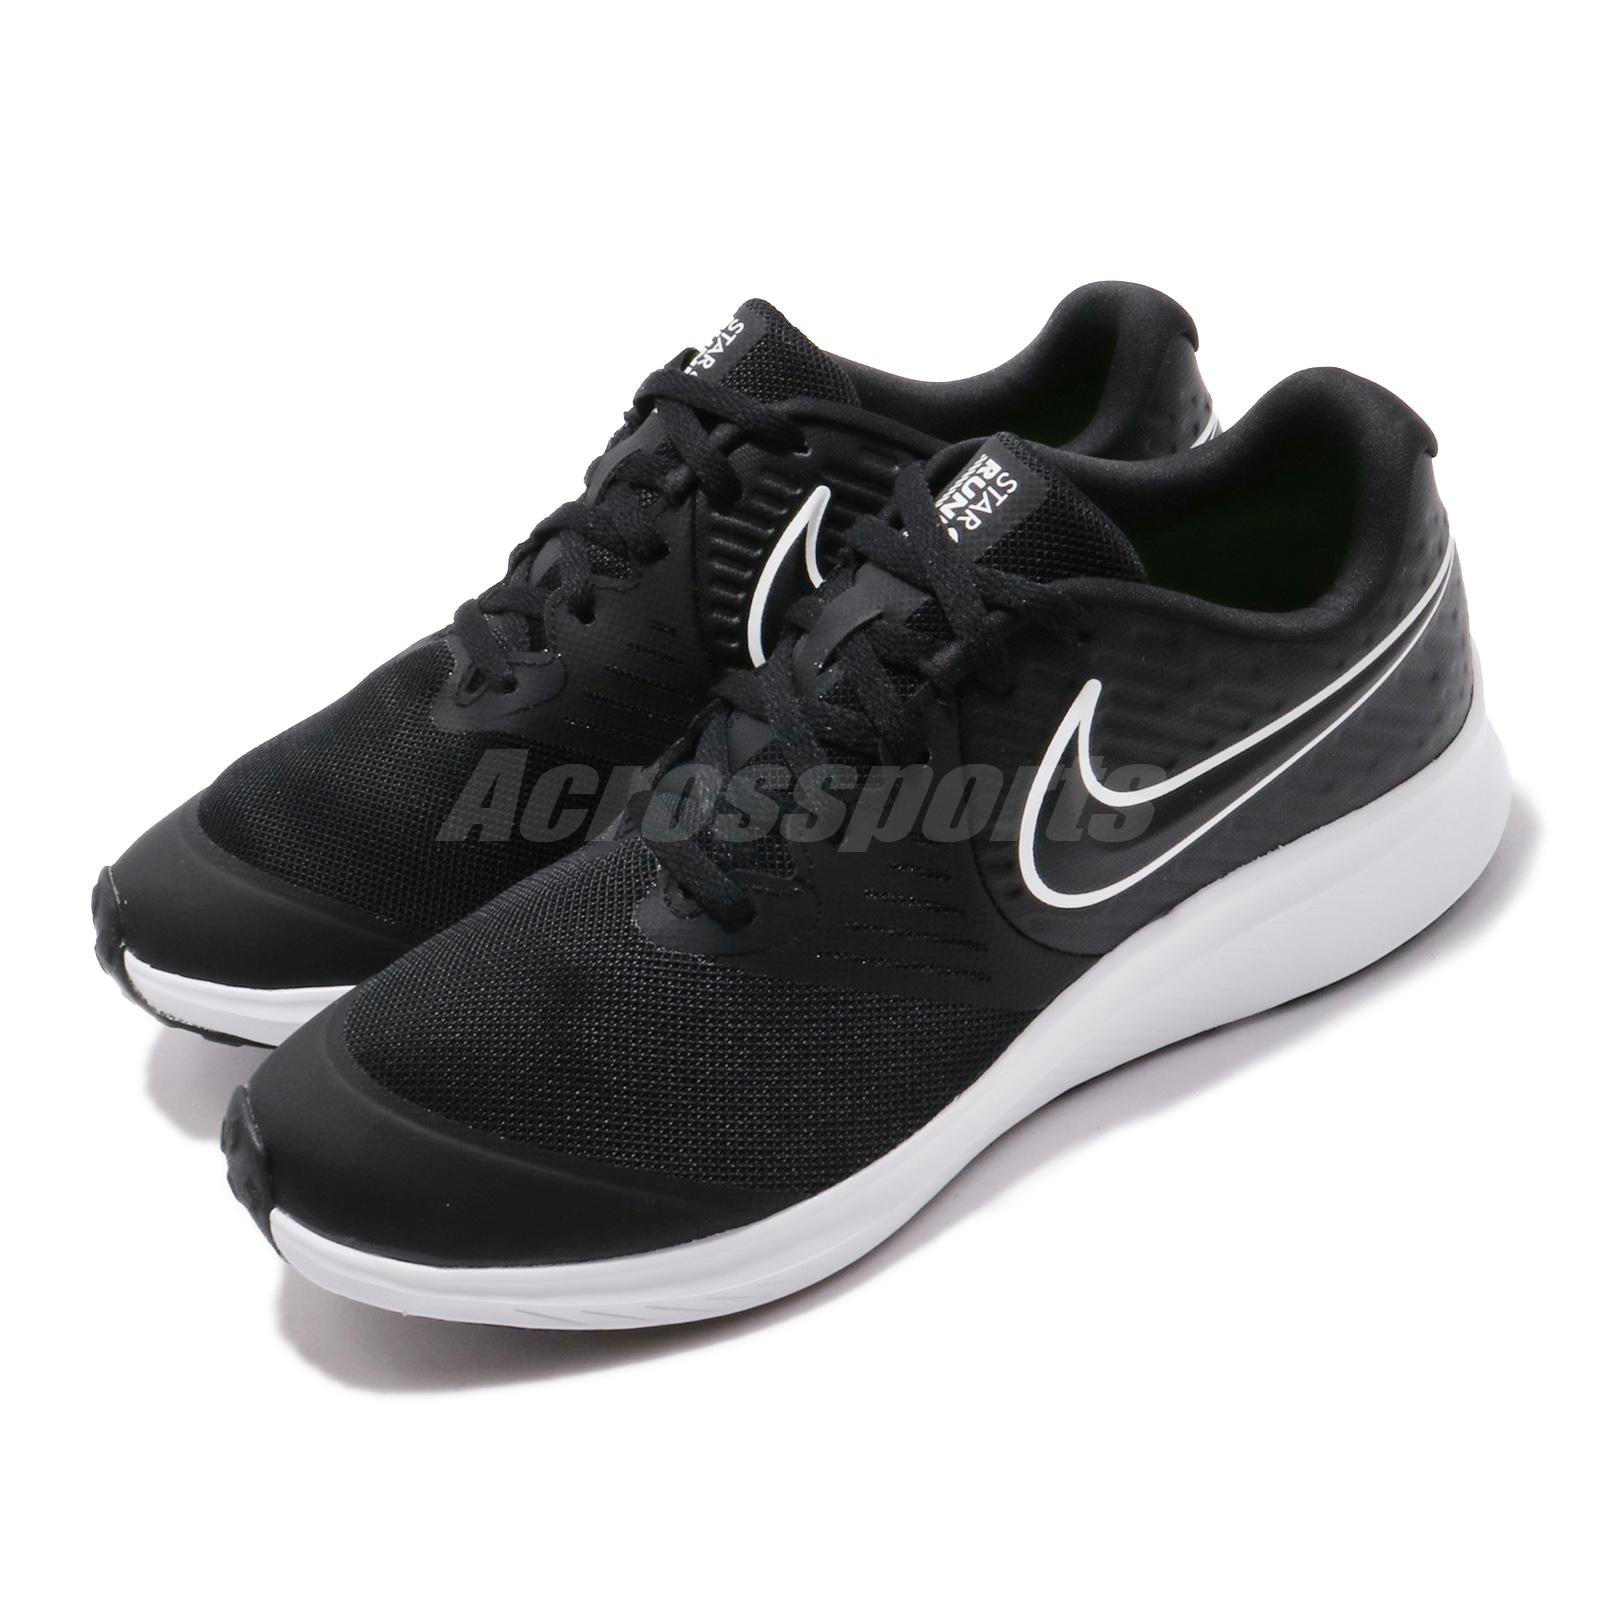 Marco Polo Gastos de envío Sinewi  Nike Star Runner 2 GS Black White Kid Women Running Shoes Sneakers AQ3542-001  | eBay